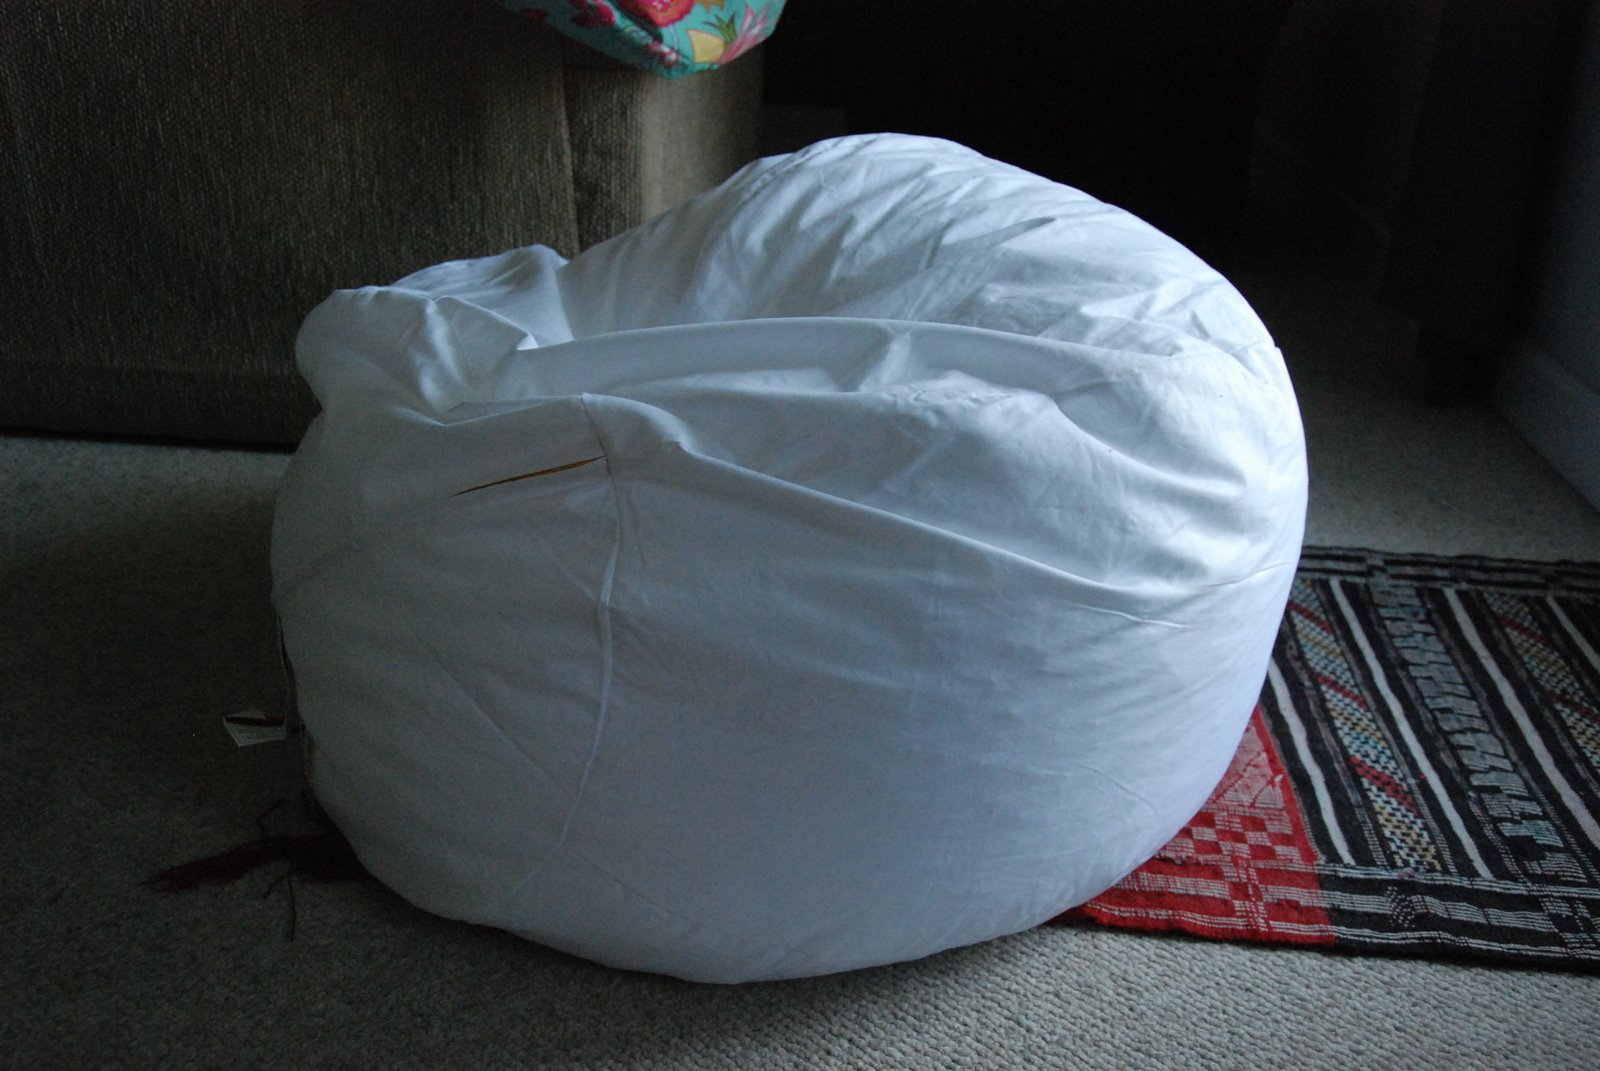 Bean Bag Chair Covers Cover Rentals For 1.00 Mab Test Tutorial